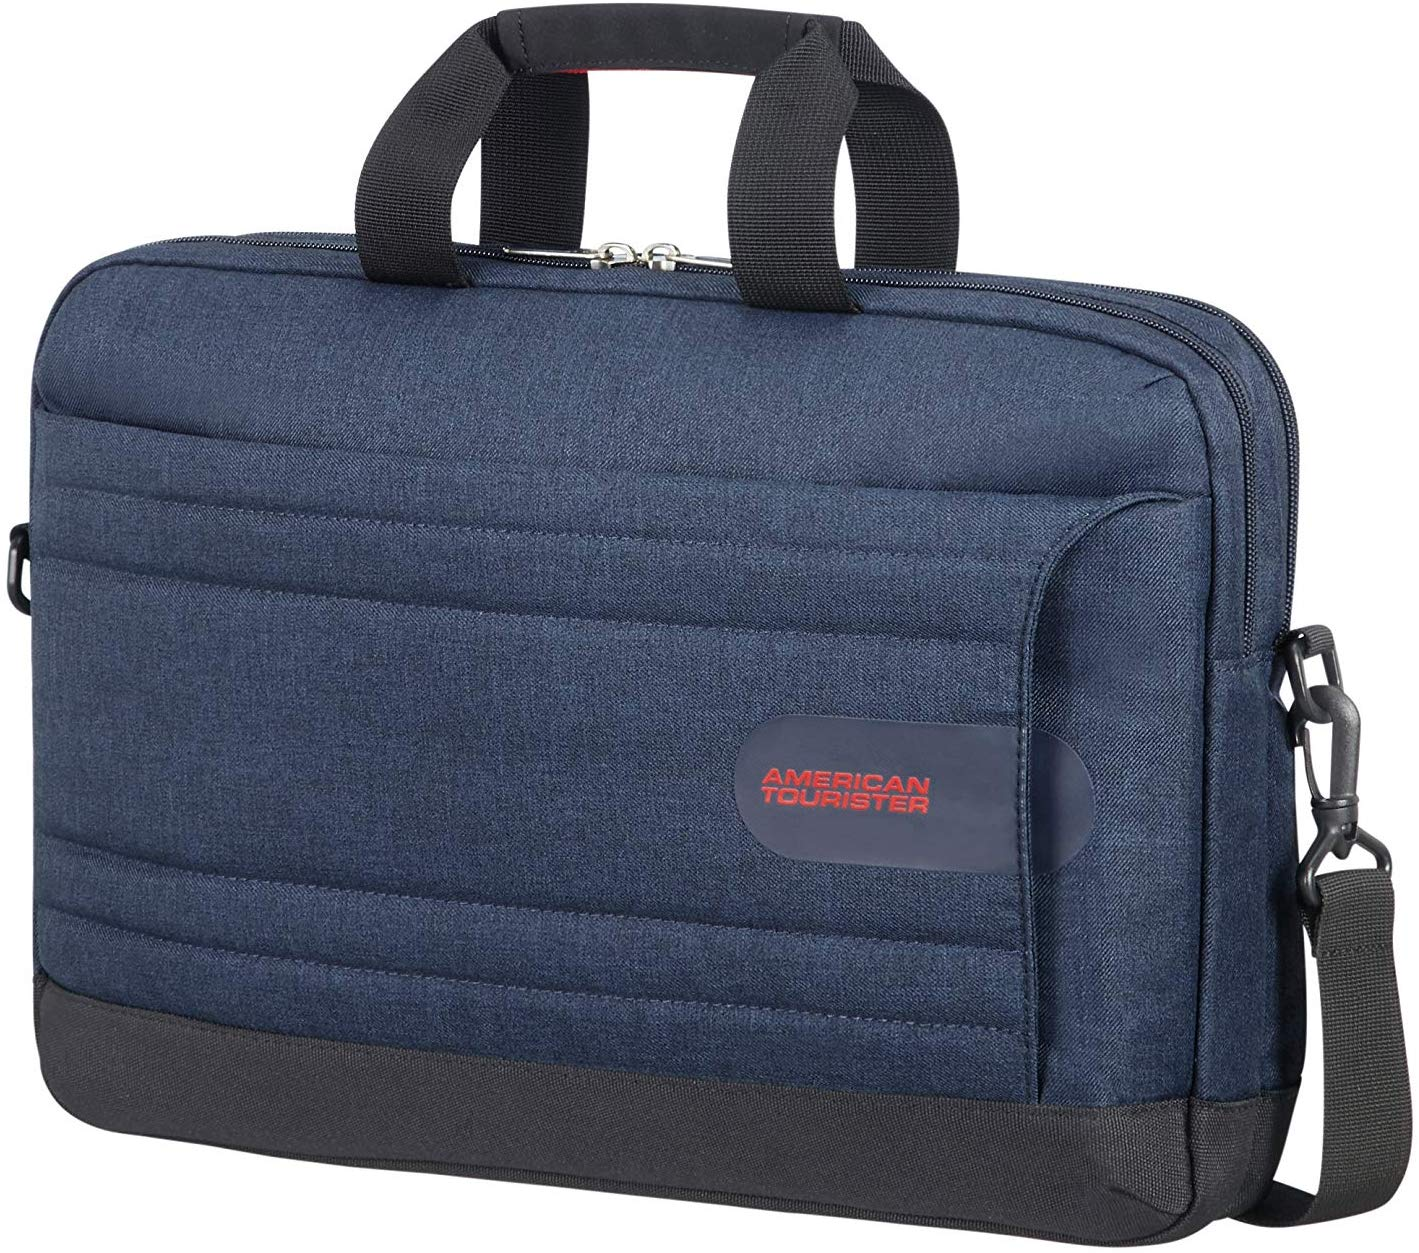 Notebook Tasche American Tourister amazon